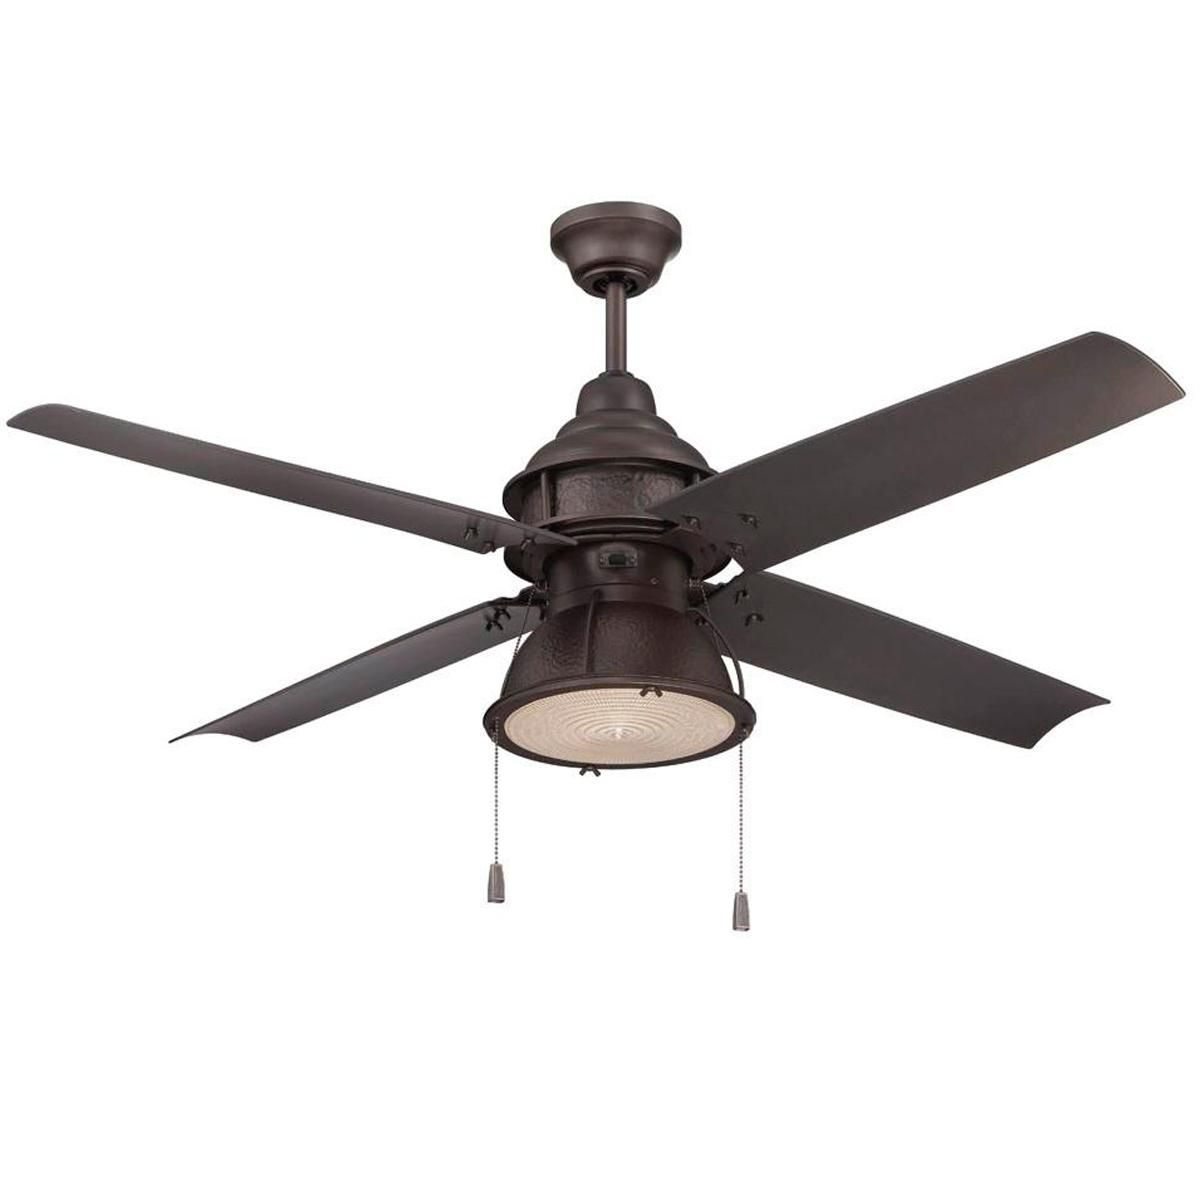 "52"" Indoor/Outdoor Rugged All Weather Ceiling Fan ..."